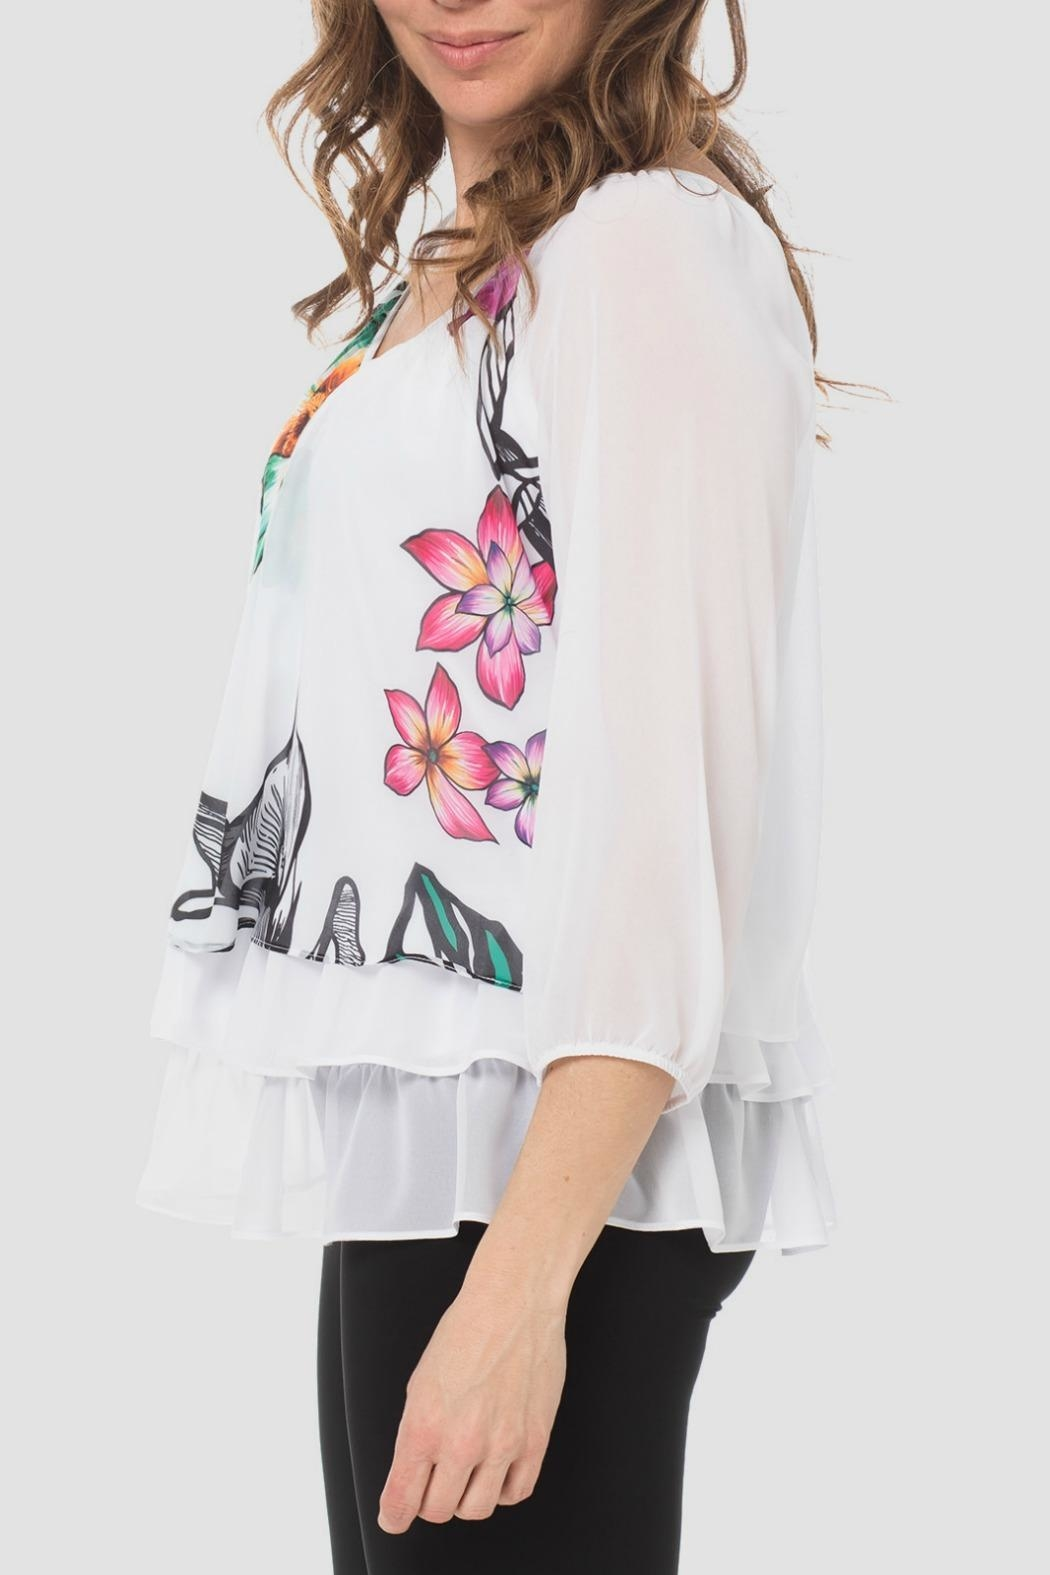 Joseph Ribkoff Floral White Top - Front Full Image